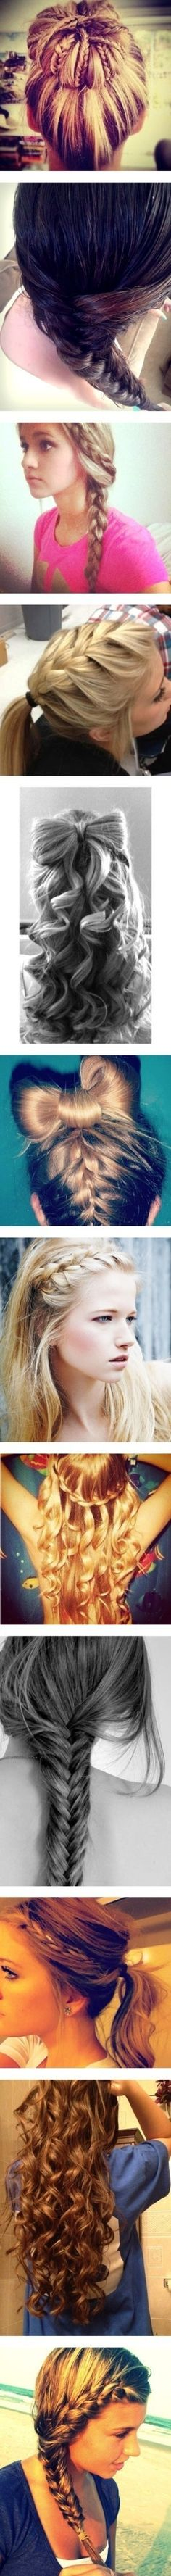 braids♥ - The Beauty Thesis